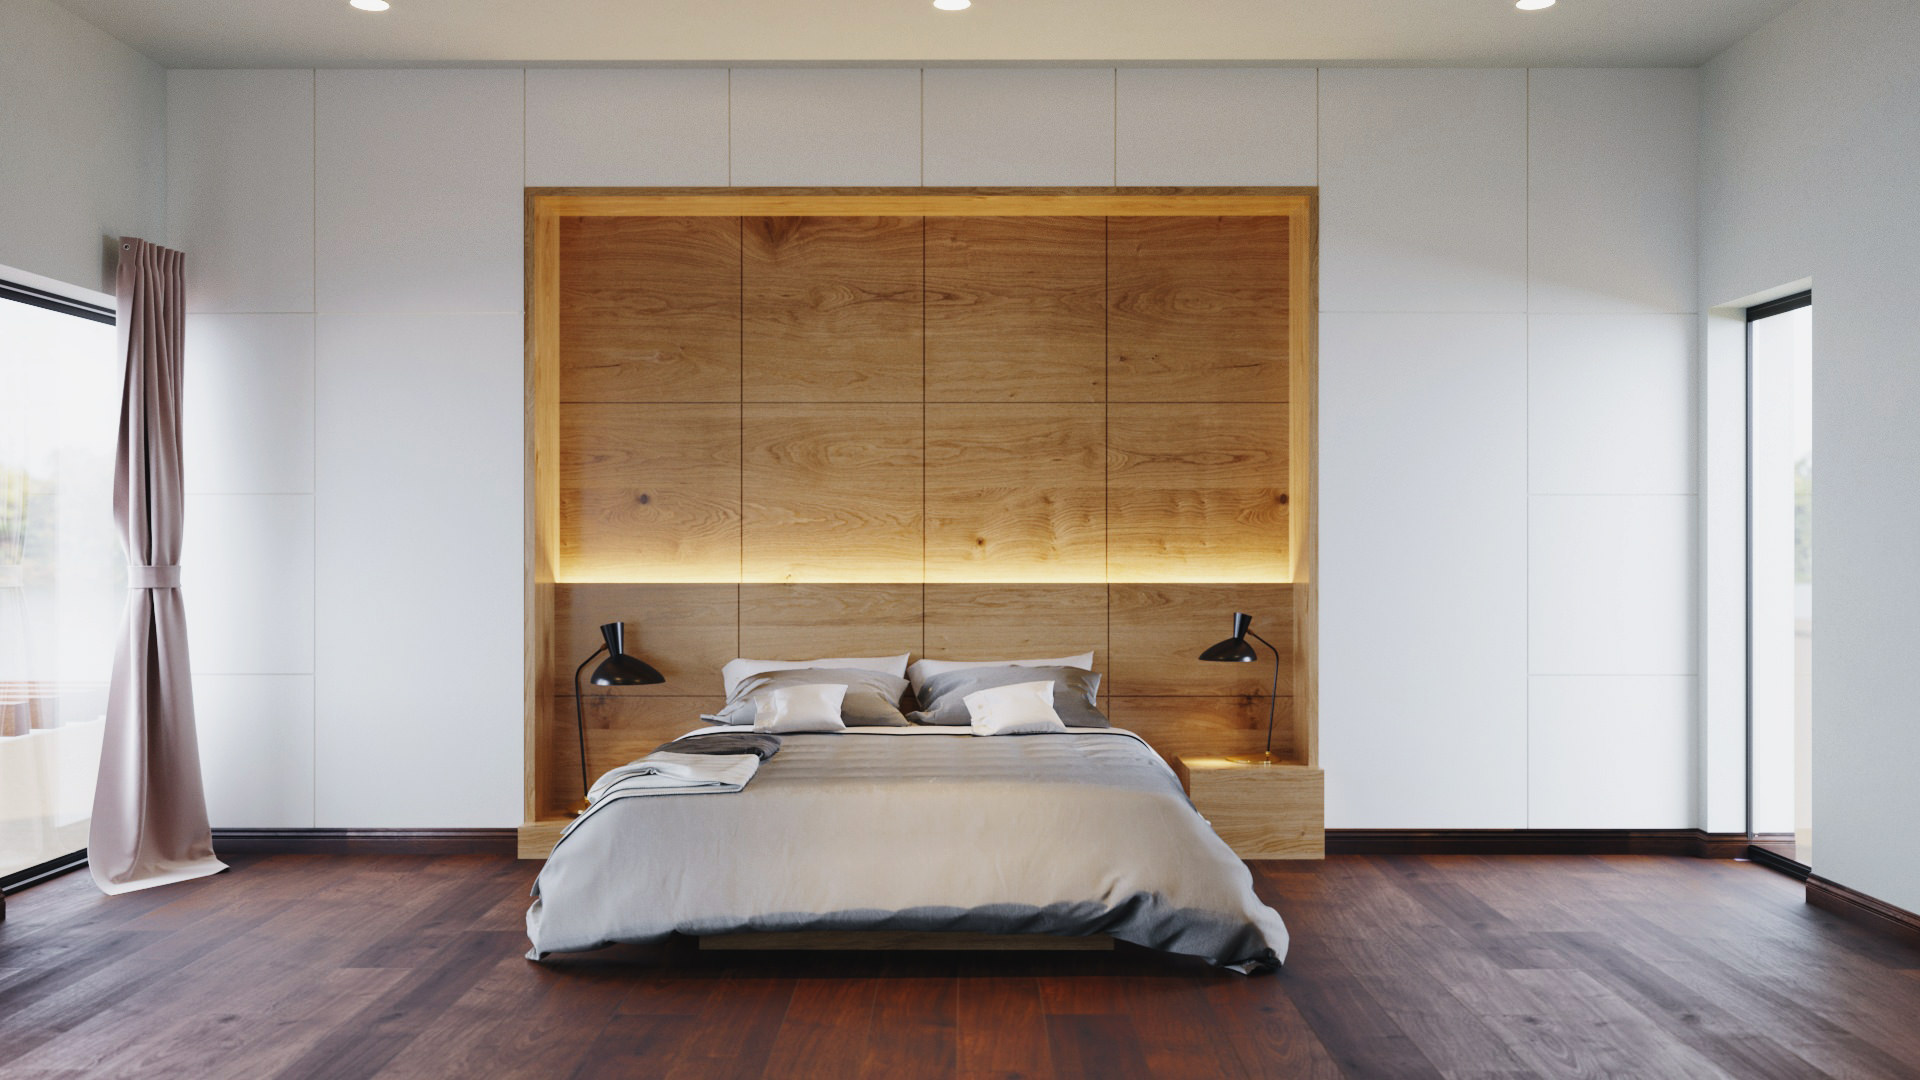 The couple's minimalist effect on their master bedroom.